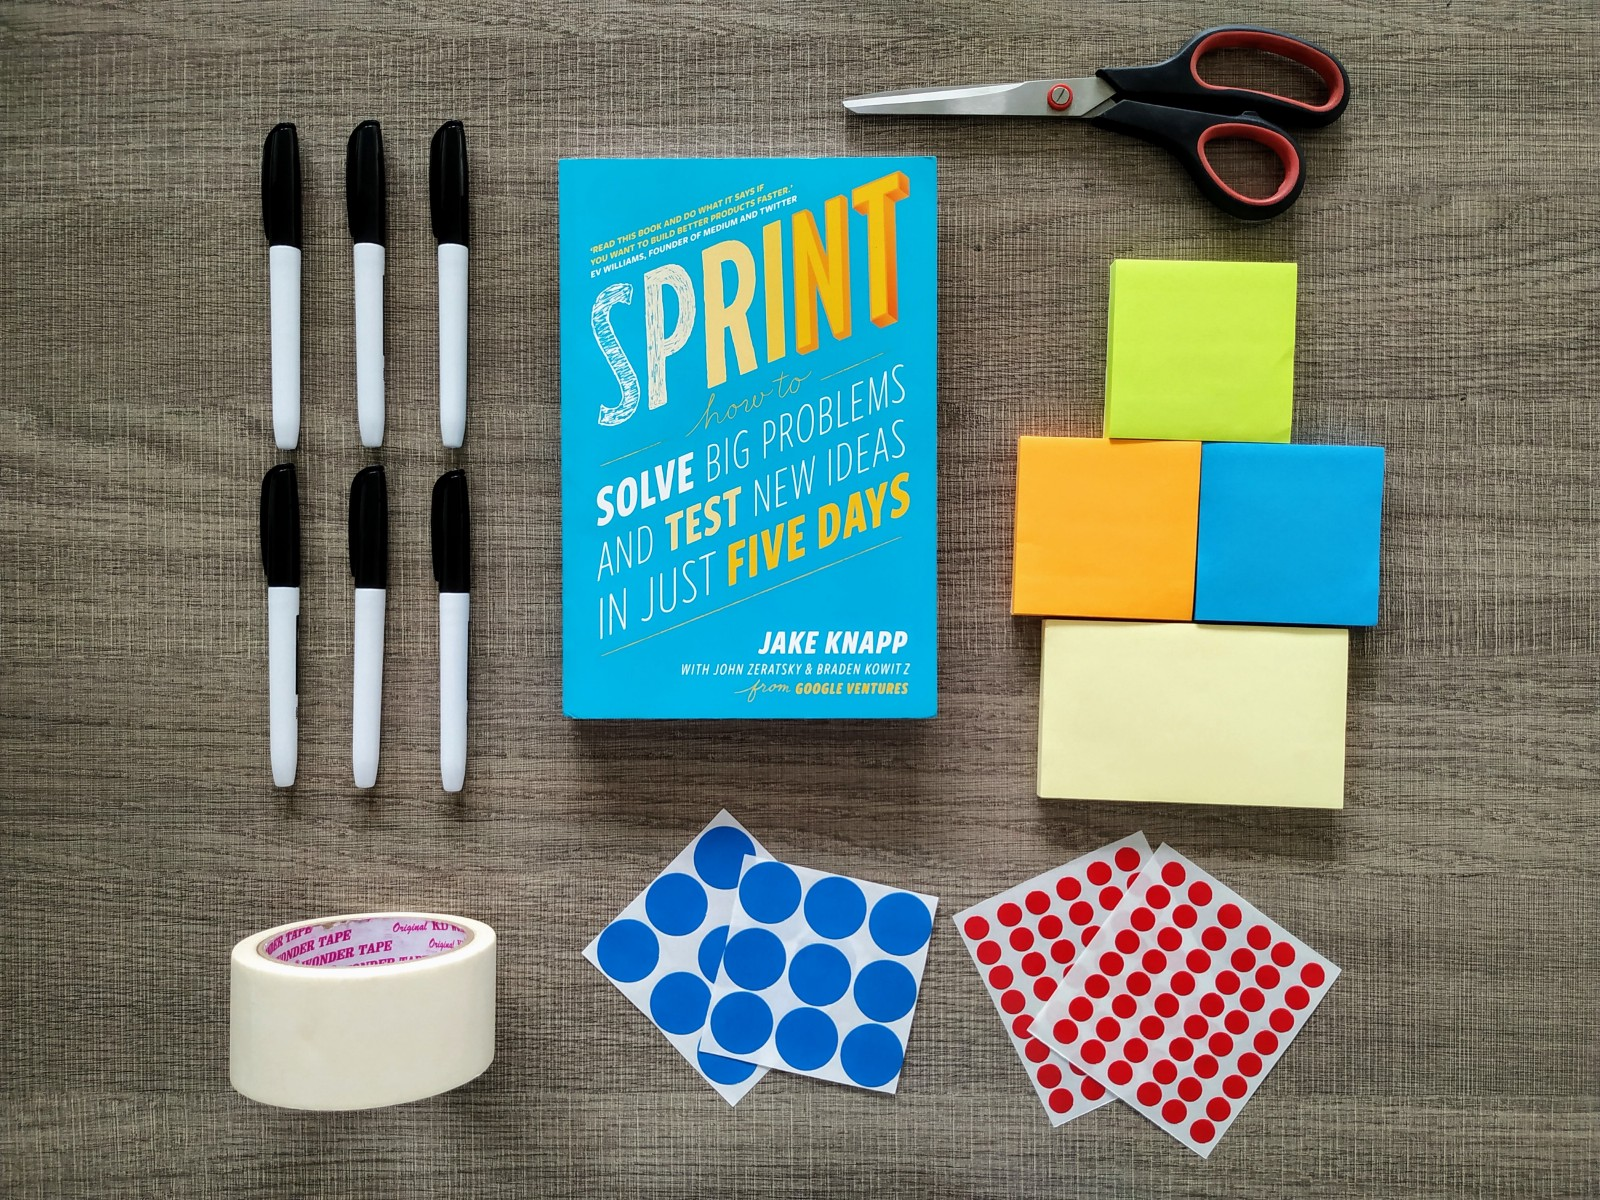 6 tips on how I fit Lean UX into Scrum